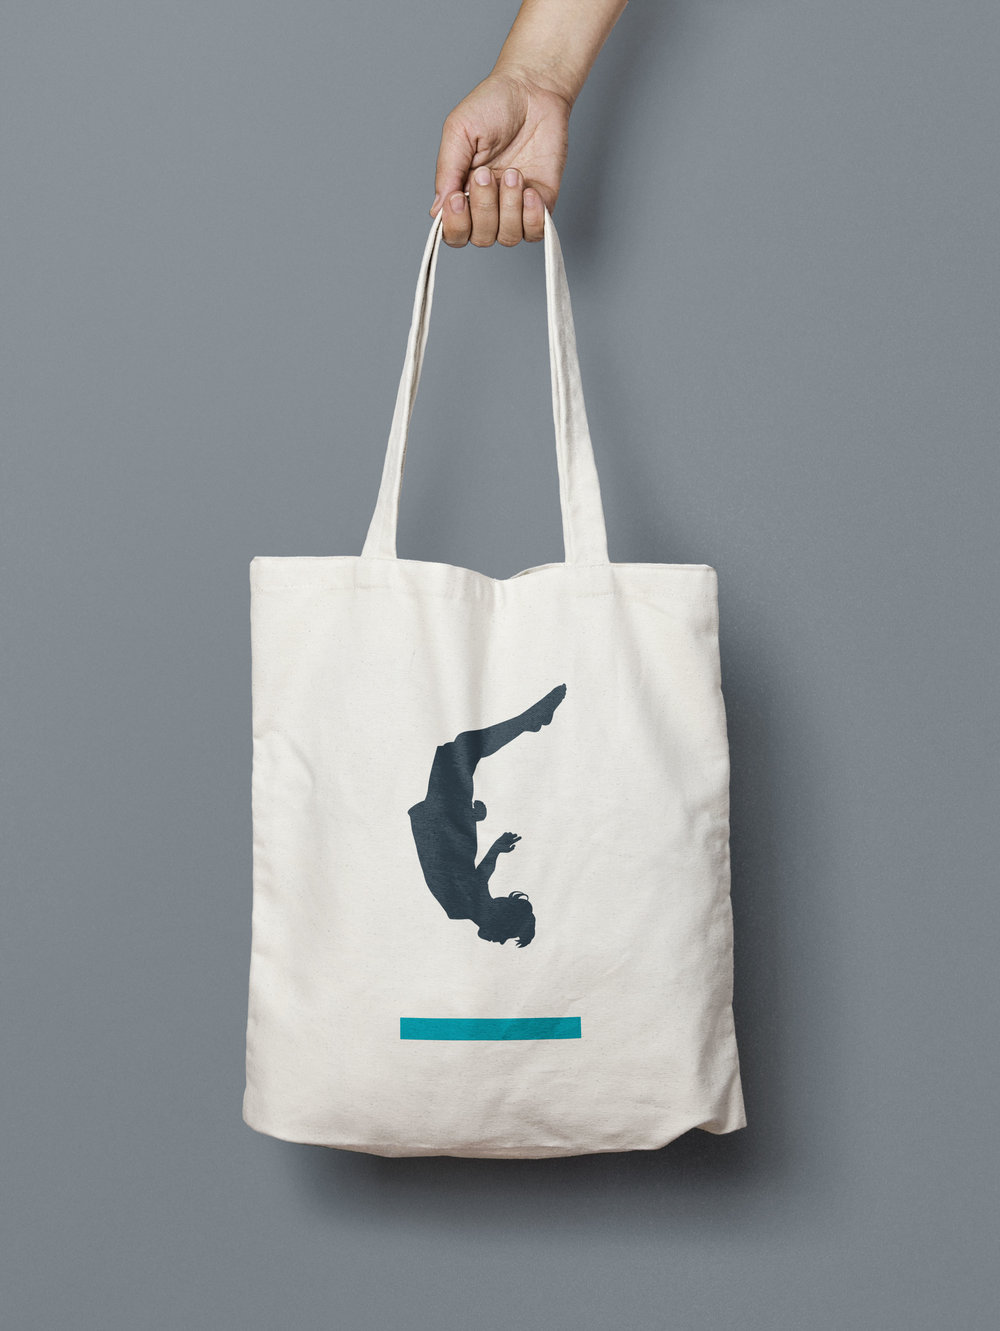 Flight Deck 53 tote bag – Design by Ian Whalley